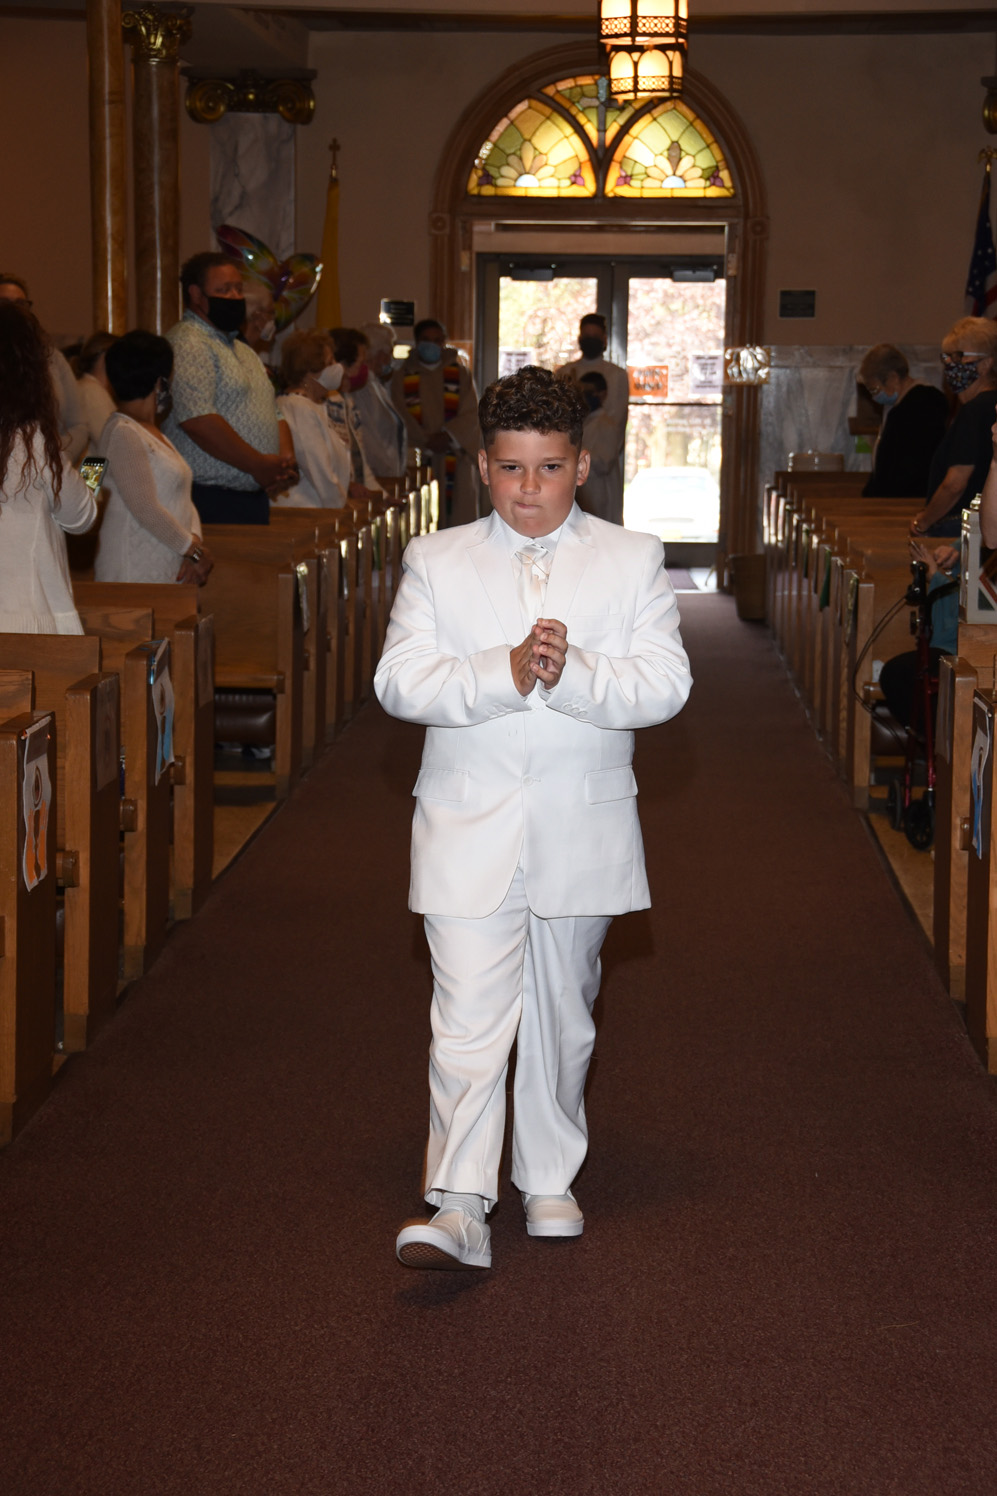 FIRST-COMMUNION-MAY-15-2021-10011063